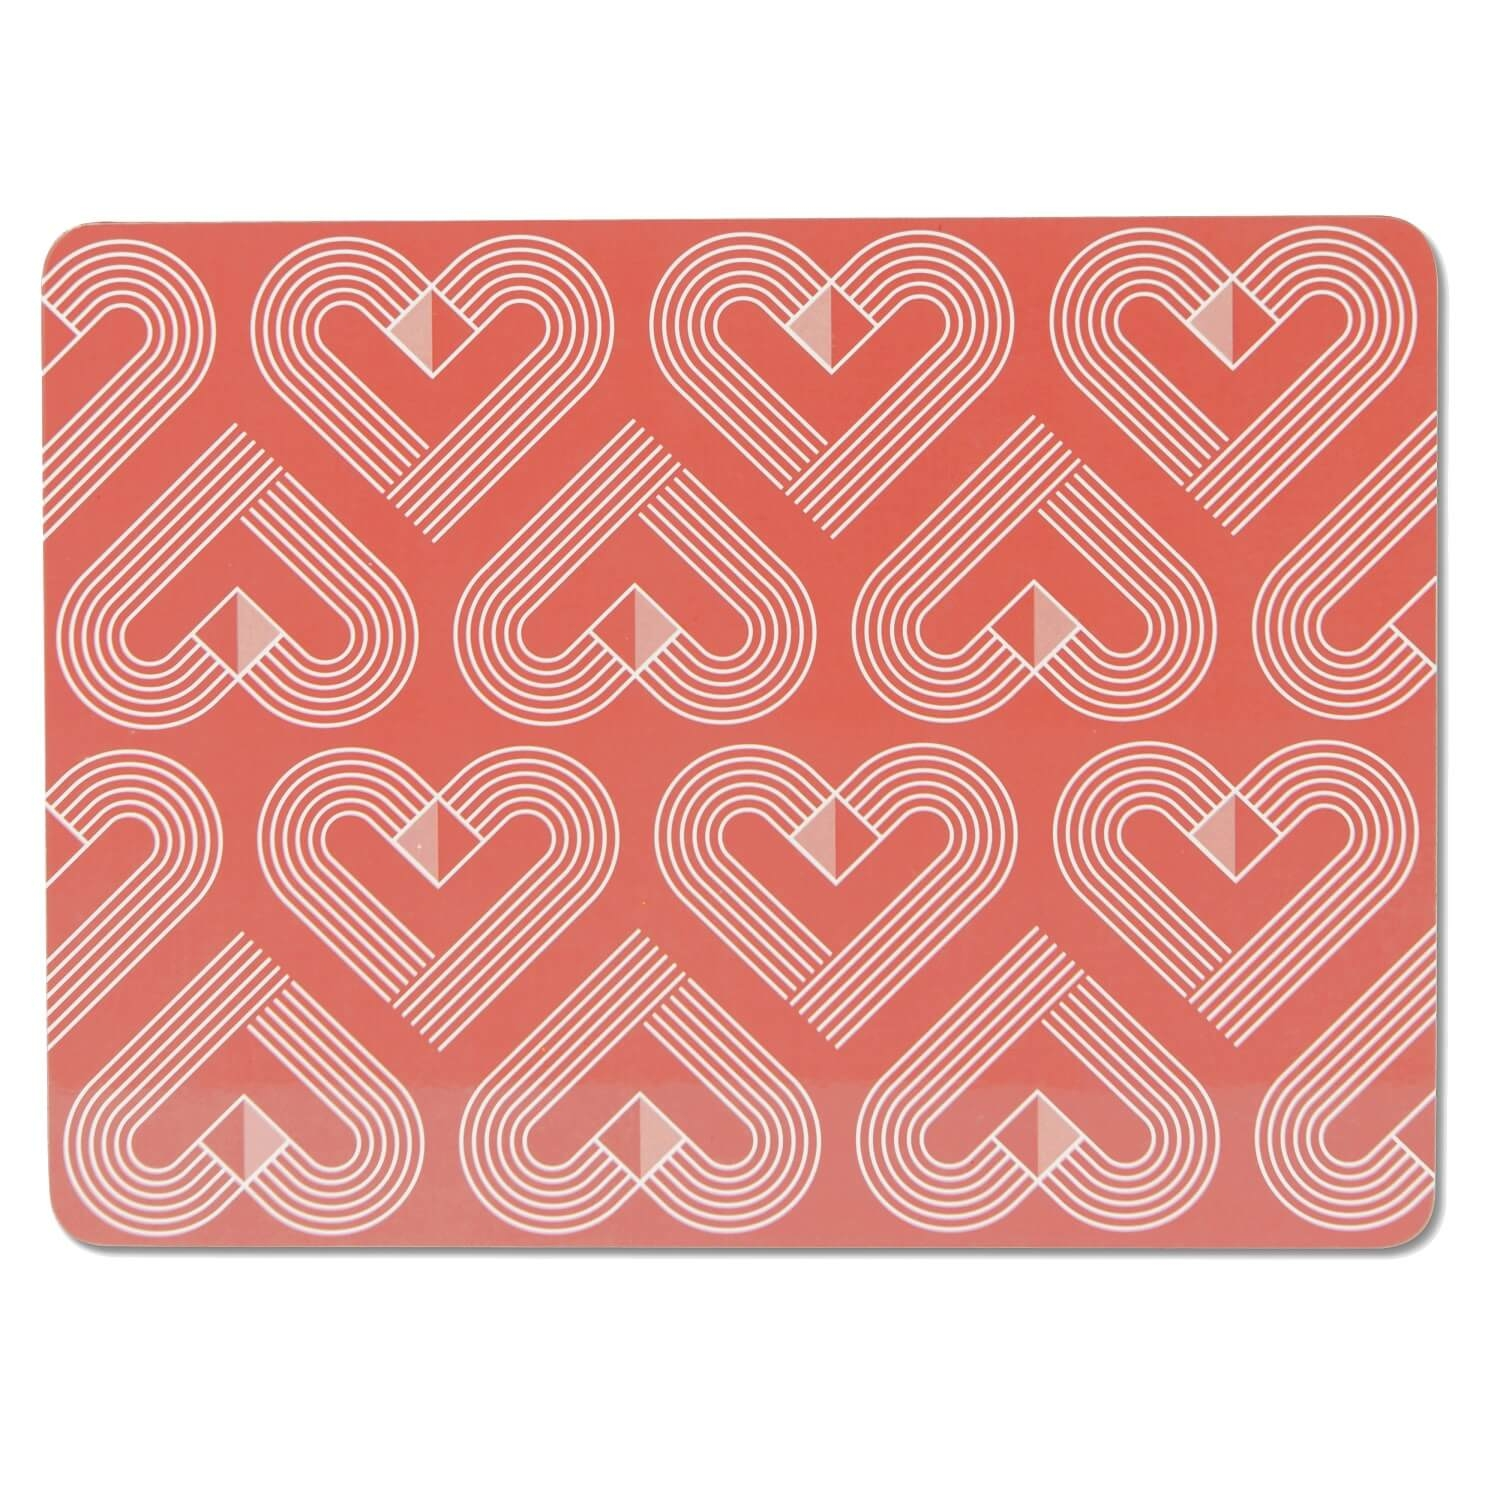 Image of Vibe Placemats, Coral